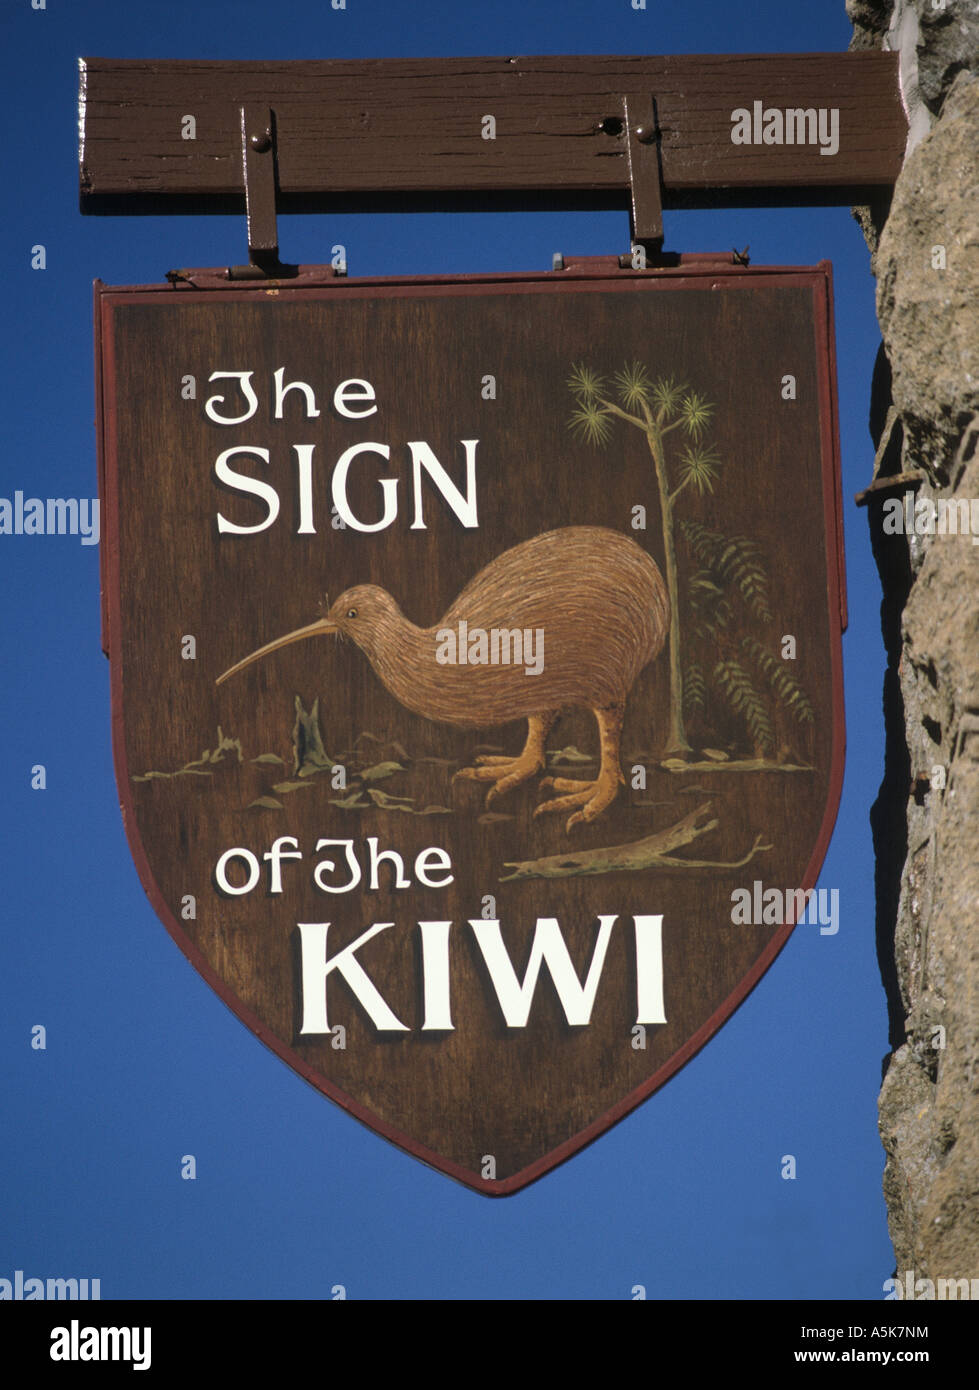 'The sign of the Kiwi' near Christchurch, South-Island, New Zealand - Stock Image